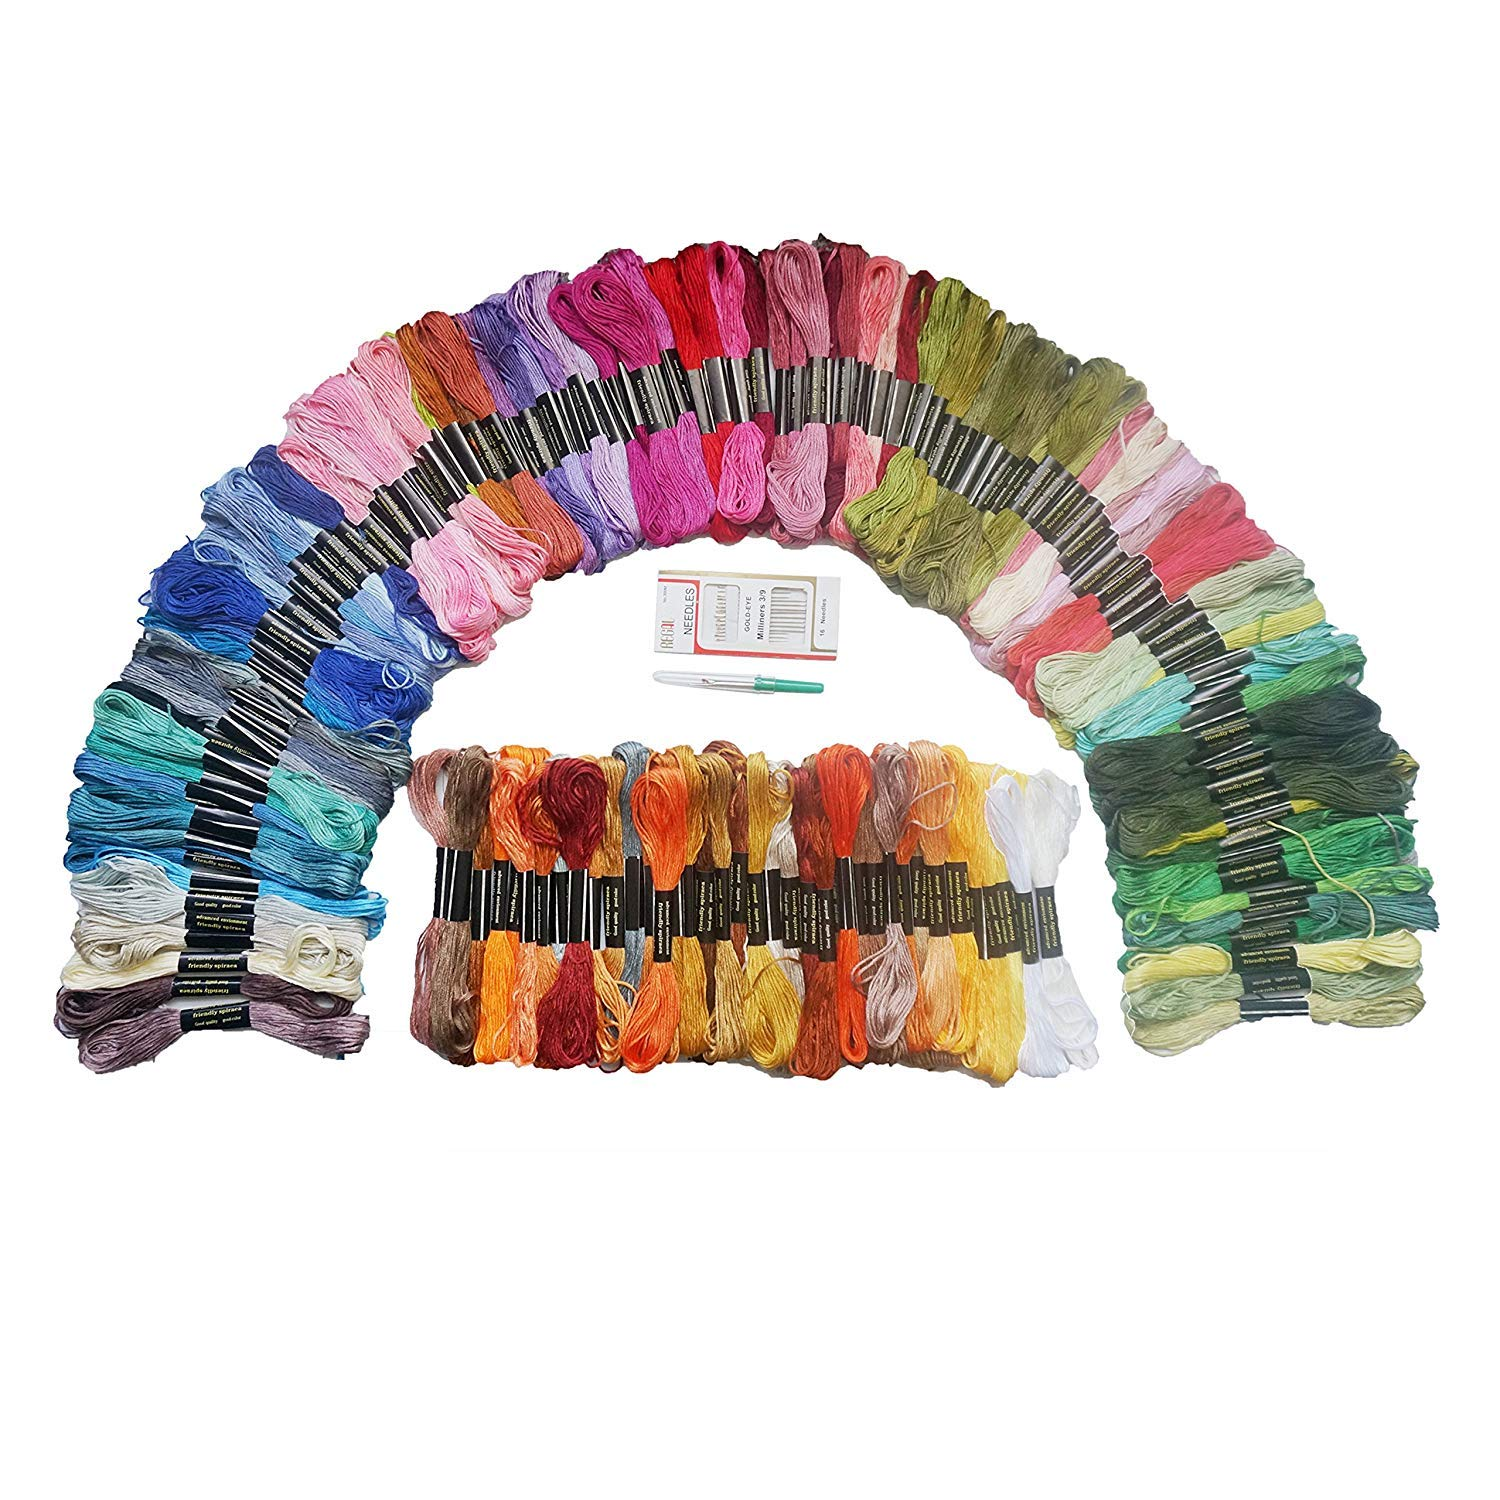 Gnognauq 150 Set Embroidery Floss Cross Stitch Floss Cross Stitch Thread with Free Needle Threader Untwist Tool for Crafters